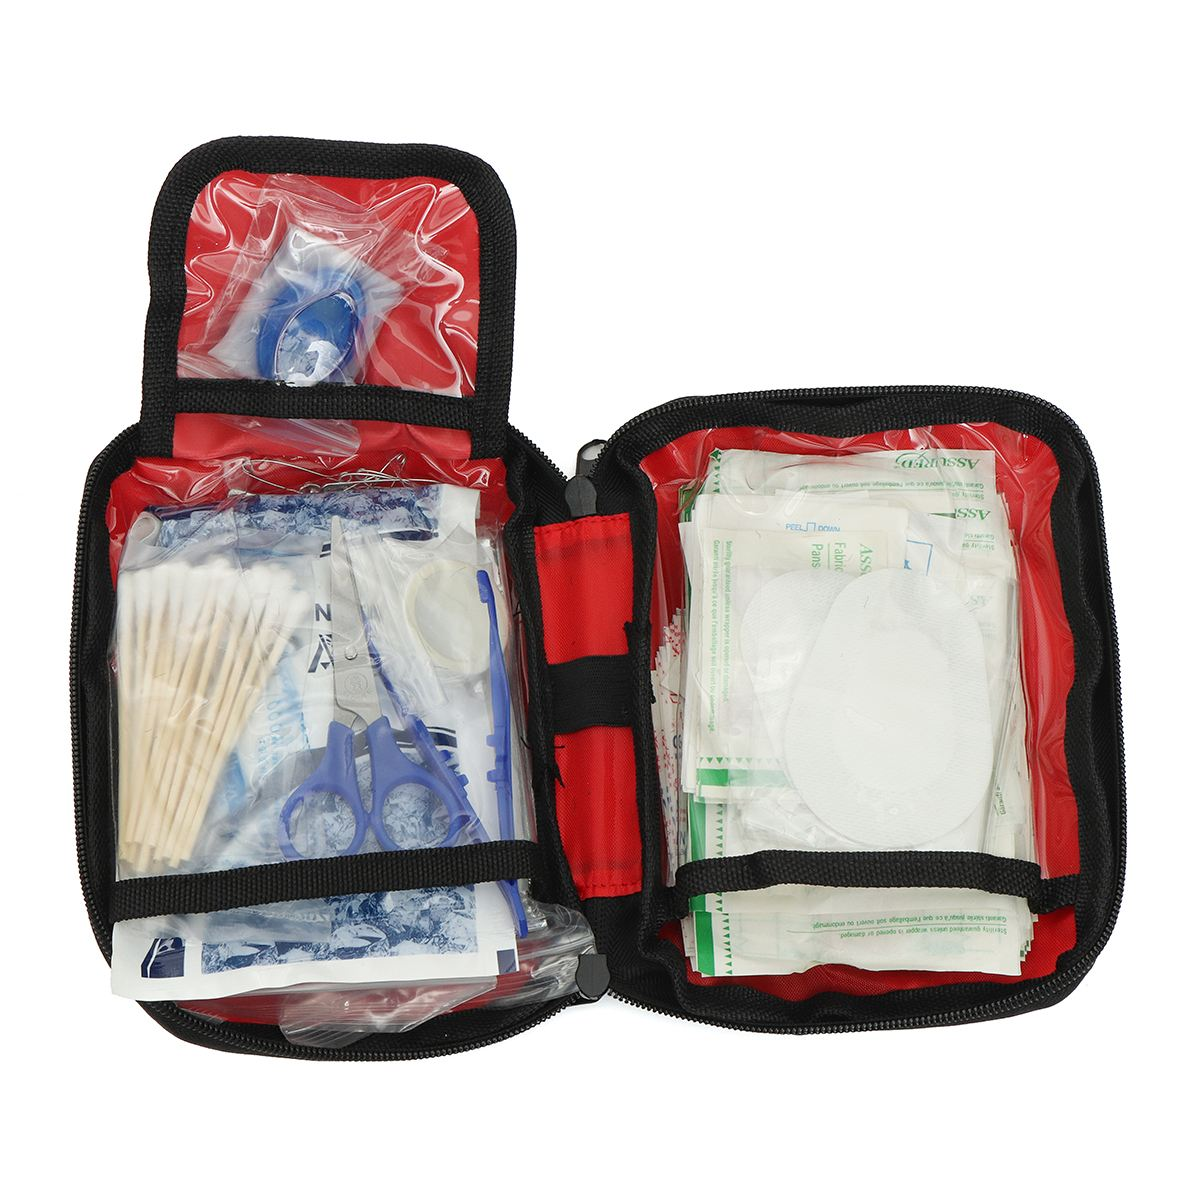 1Set 303 Pieces First Aid kit Emergency Set Kit-A Must Have For Every Family julia peters tang pivot points five decisions every successful leader must make